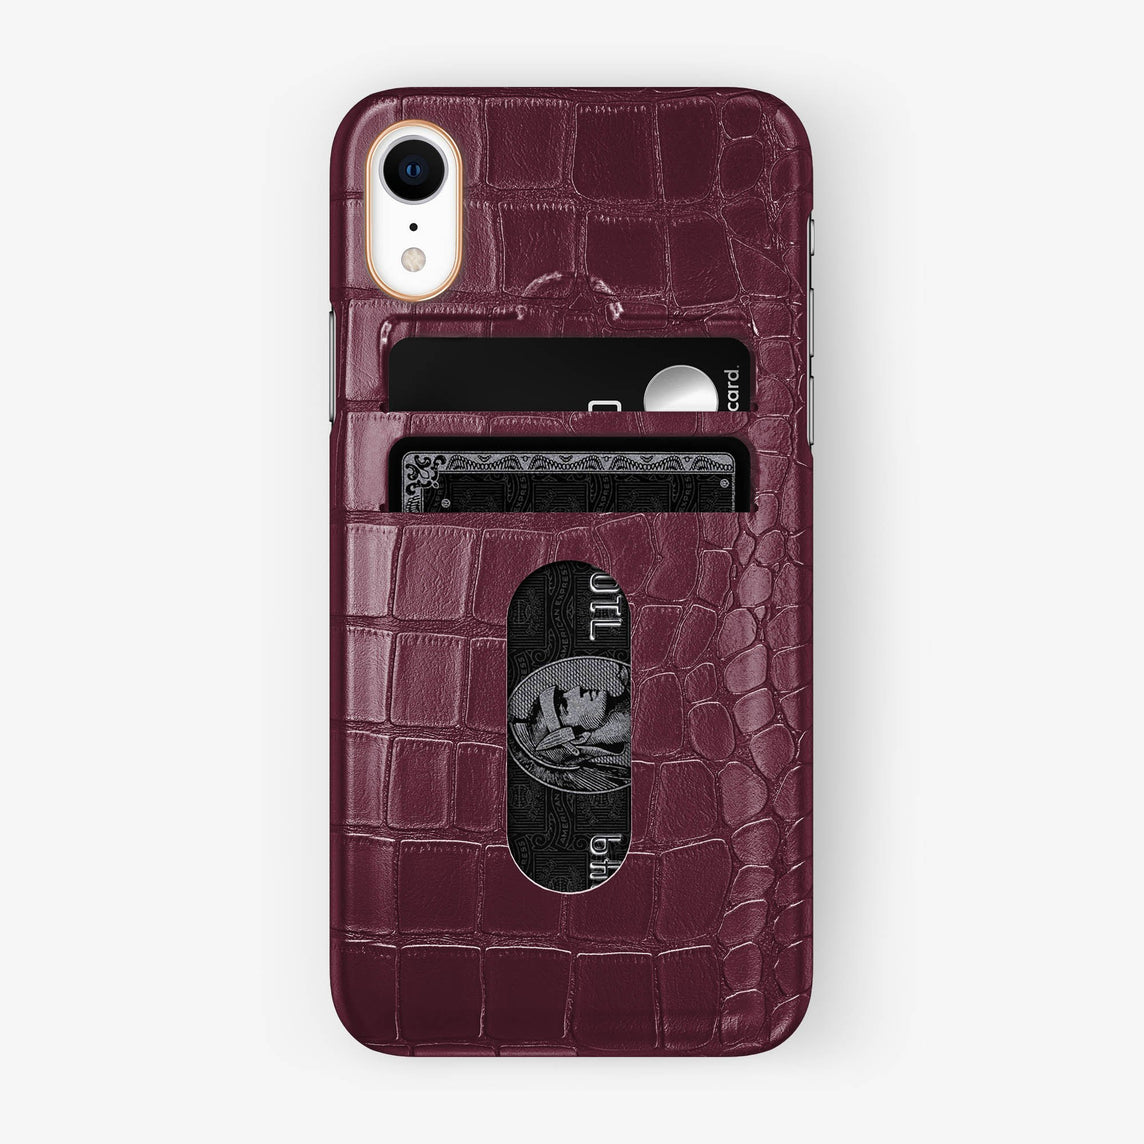 Alligator [iPhone Card Holder Case] [model:iphone-xr-case] [colour:burgundy] [finishing:rose-gold]